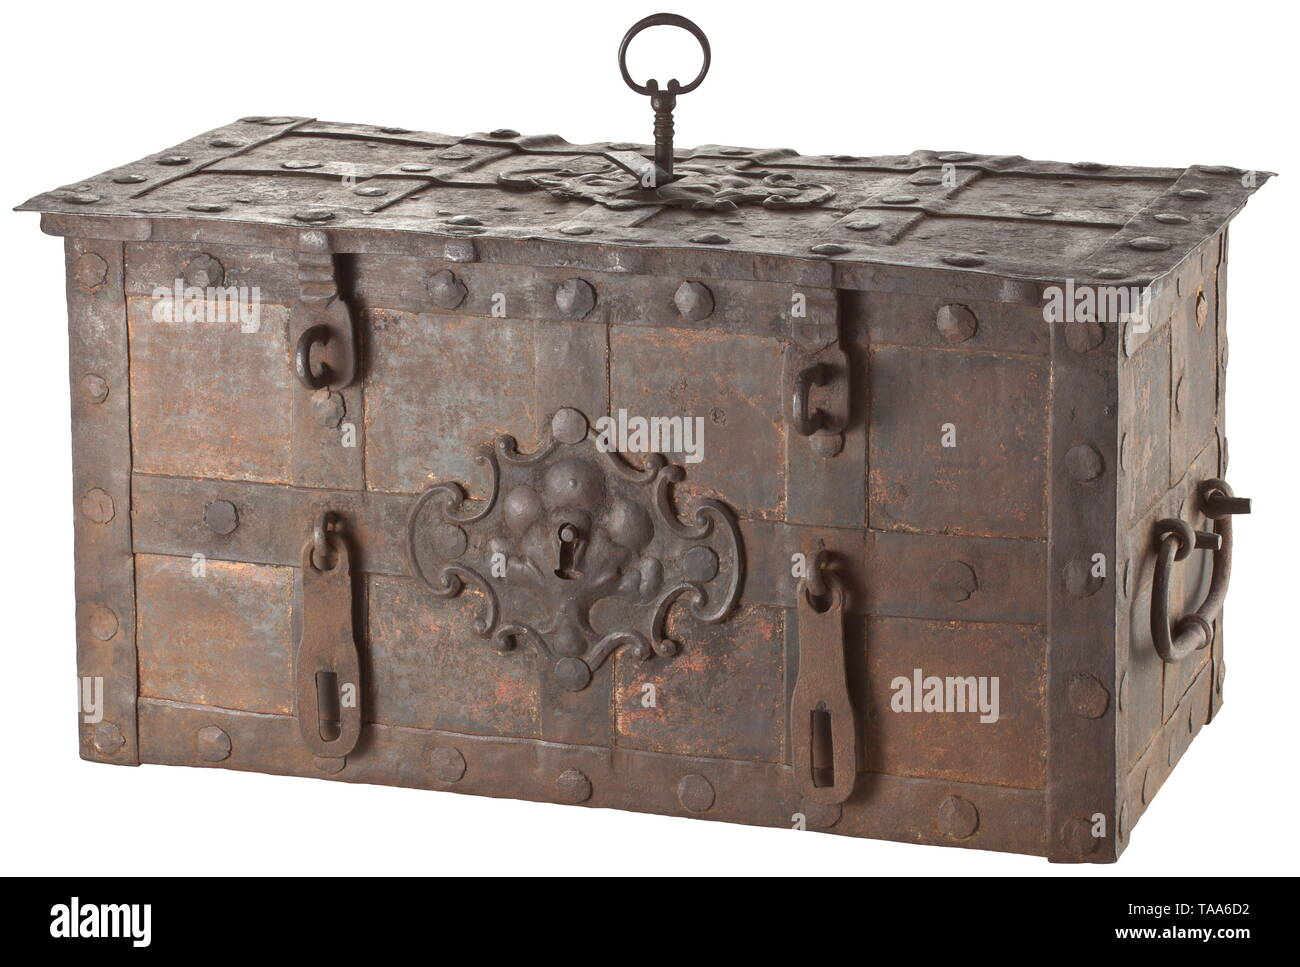 A German war chest, circa 1750 Rectangular body of sheet iron with banded fittings and a hinged lid, the front side with a sham lock with curved key plate and two drop bolts, laterally two movable carrying handles. The lid with a central keyhole, the lock plate with spring mounted shroud, original key, the lock housing with intact ward, locking mechanism with nine-fold latch. The original associated cover plate of sheet iron with original floral decor is laid in loose. Dimensions 38 x 77 x 40 cm. historic, historical, handicrafts, handcraft, craf, Additional-Rights-Clearance-Info-Not-Available - Stock Image